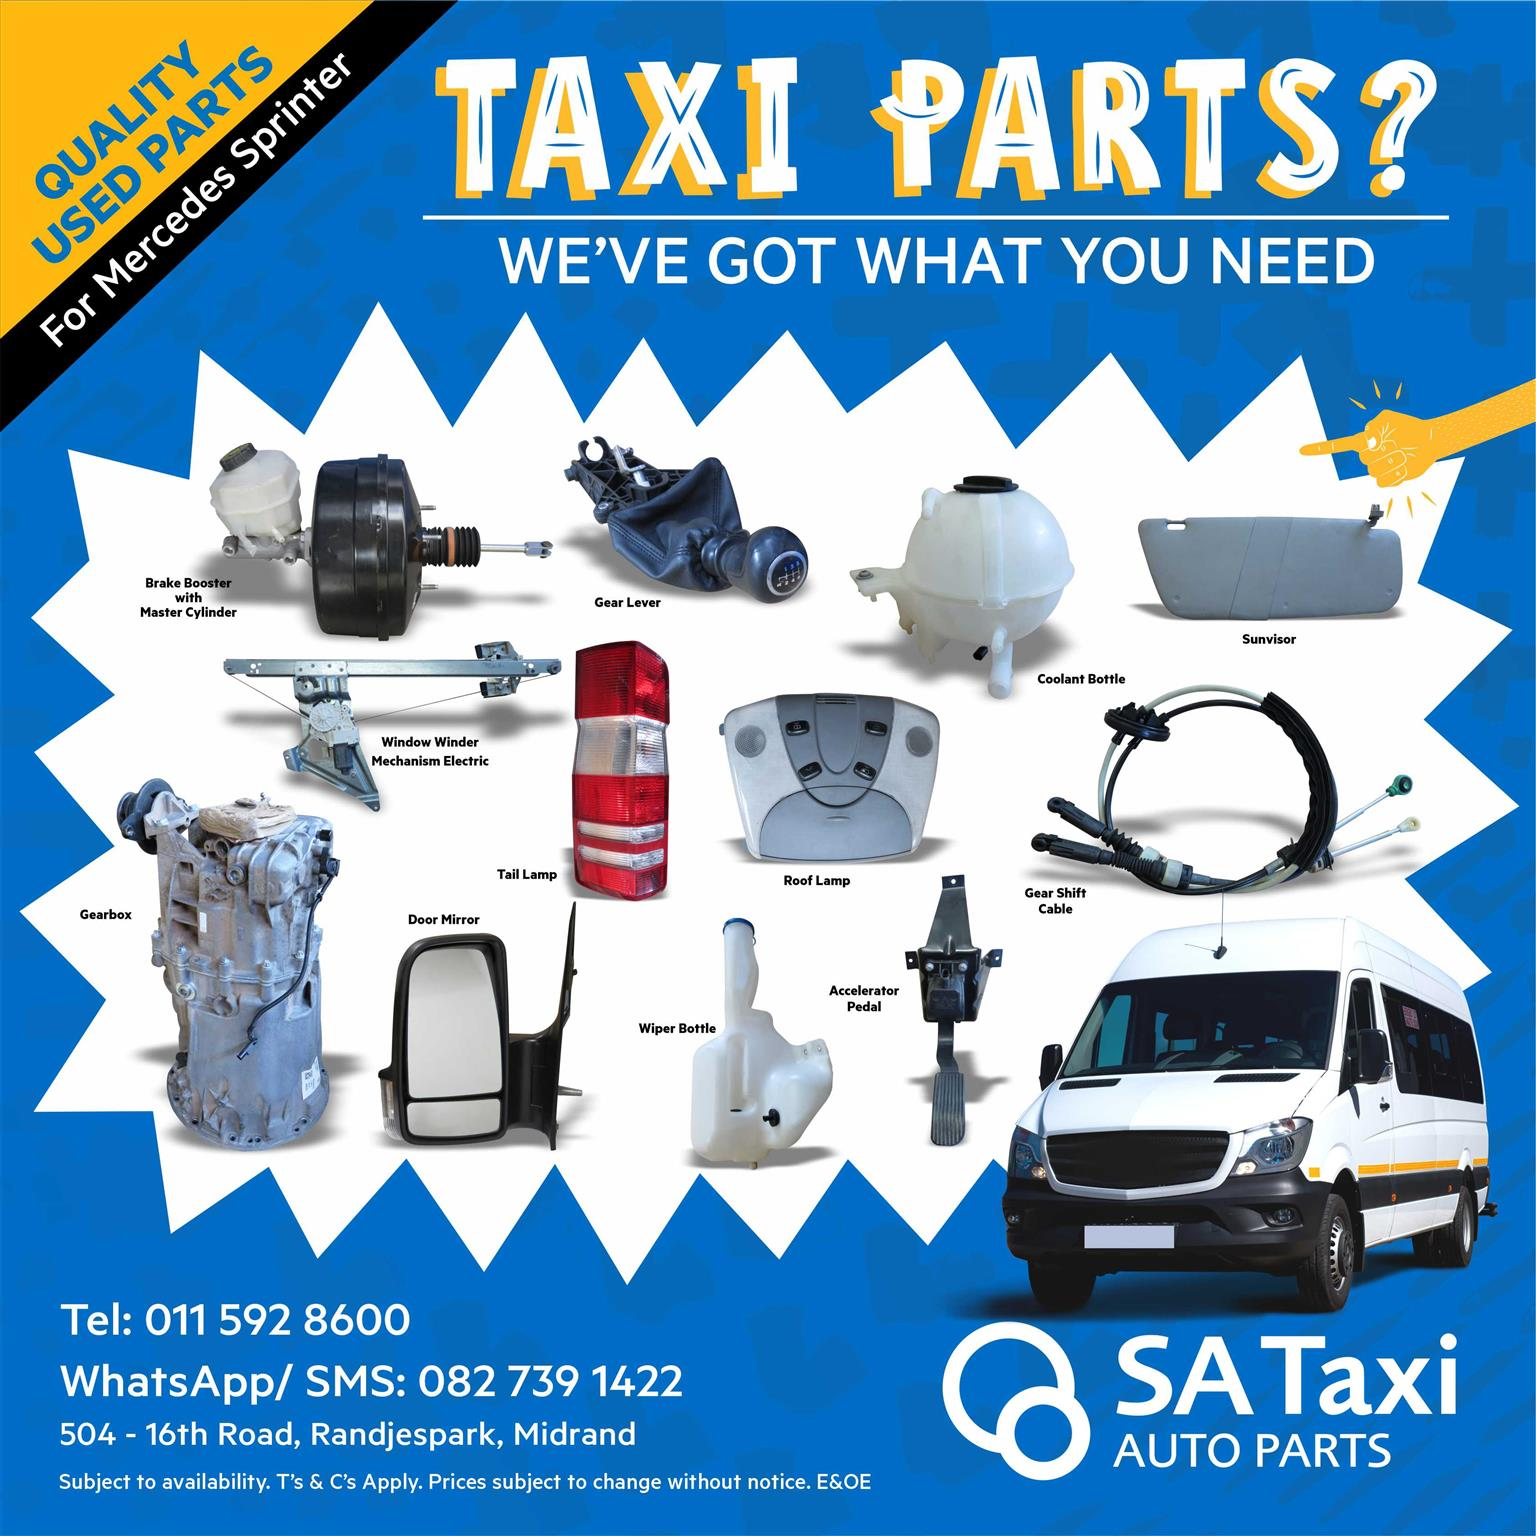 Taxi Service Parts? We've got what you need! SA Taxi Auto Parts quality spares